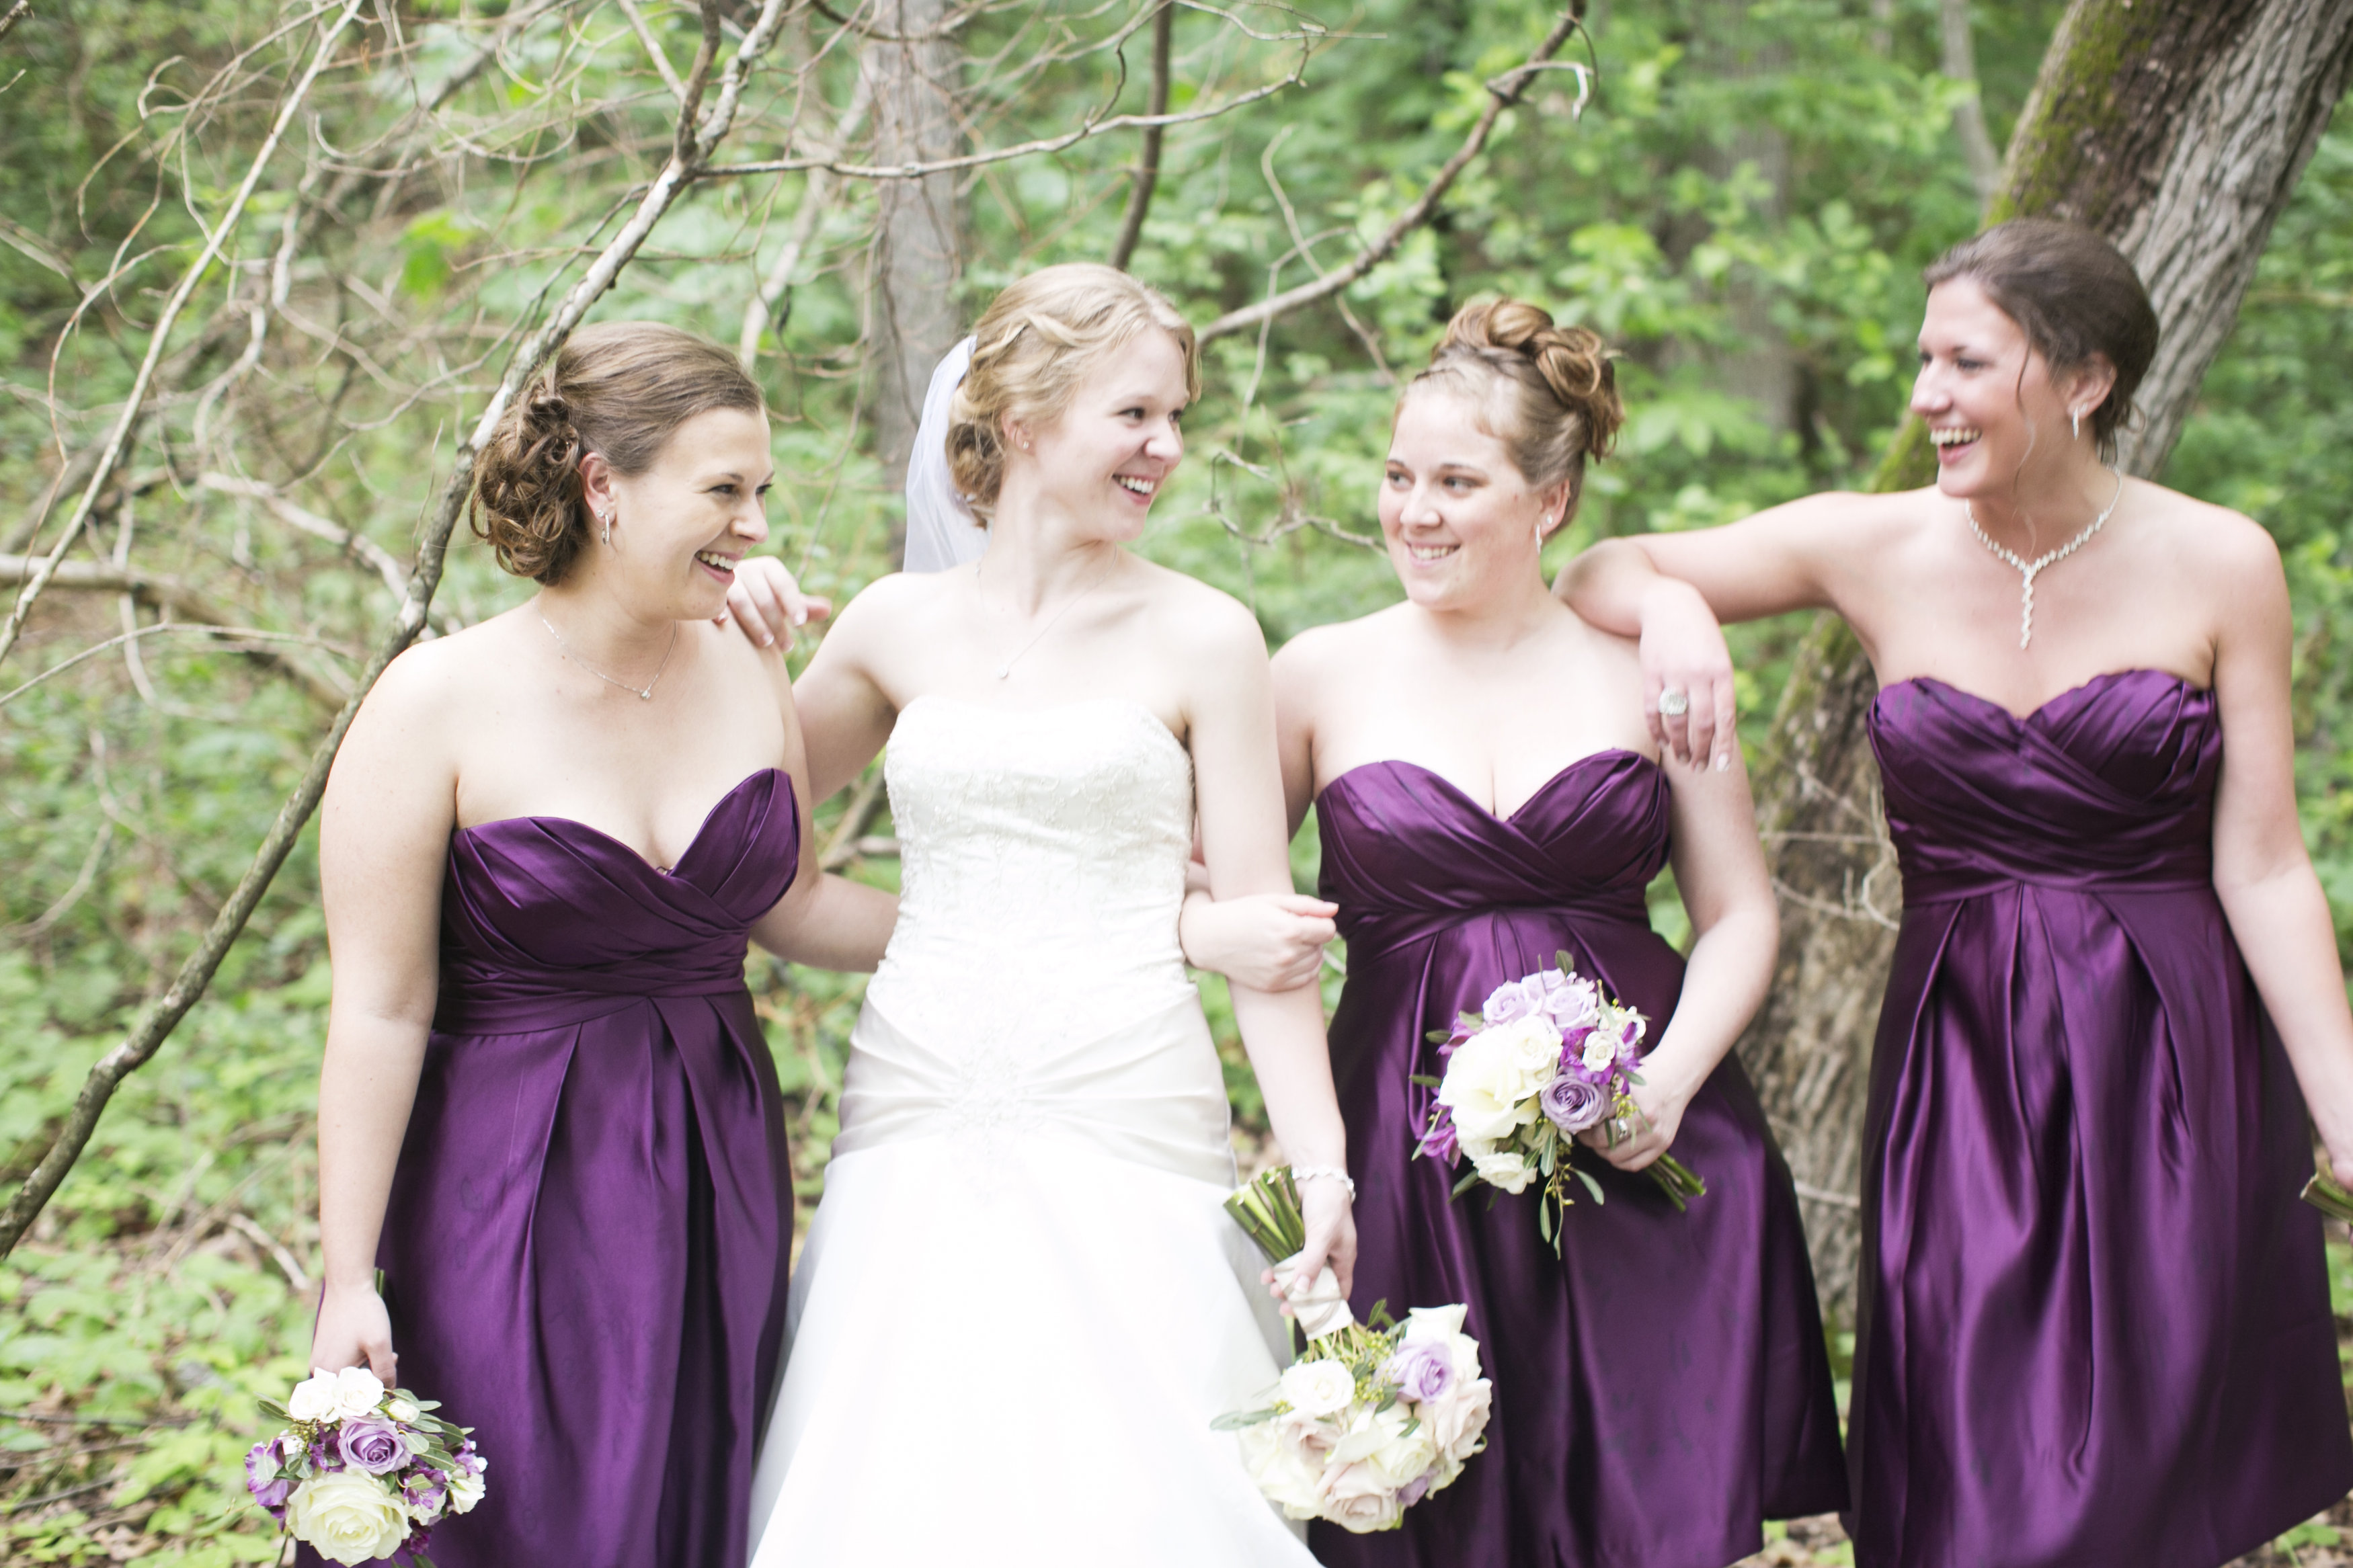 smiling bride, happy bridesmaids in purple dresses with bouquets